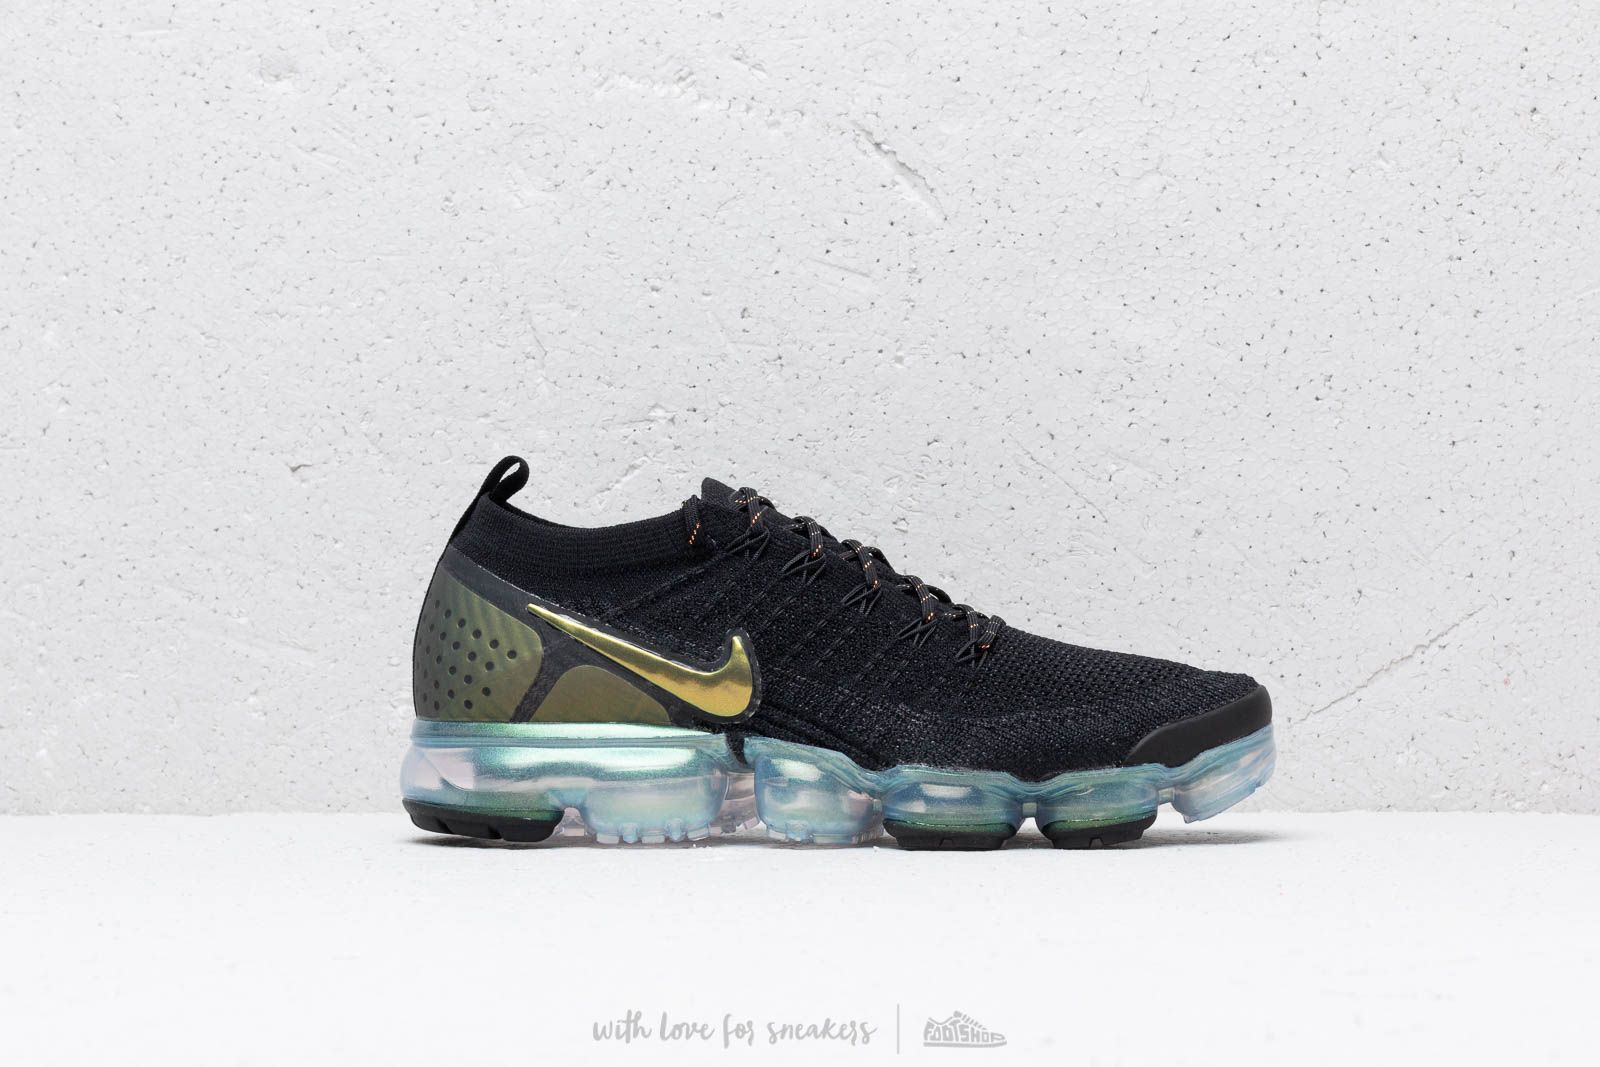 timeless design 5d442 48d9e Nike Air Vapormax Flyknit 2 Black  Multi-Color-Metallic Silver at a great